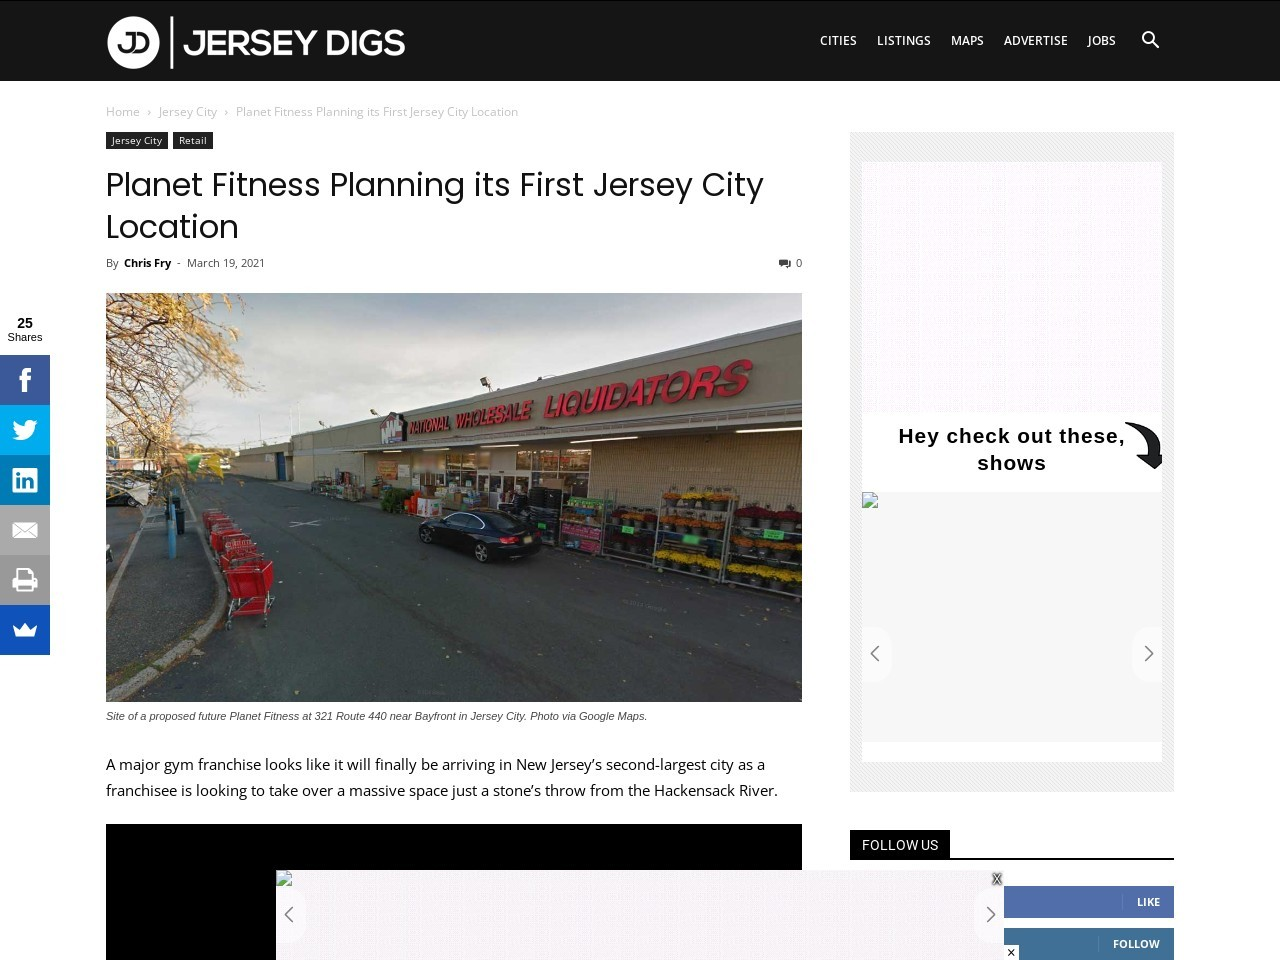 Planet Fitness Planning its First Jersey City Location